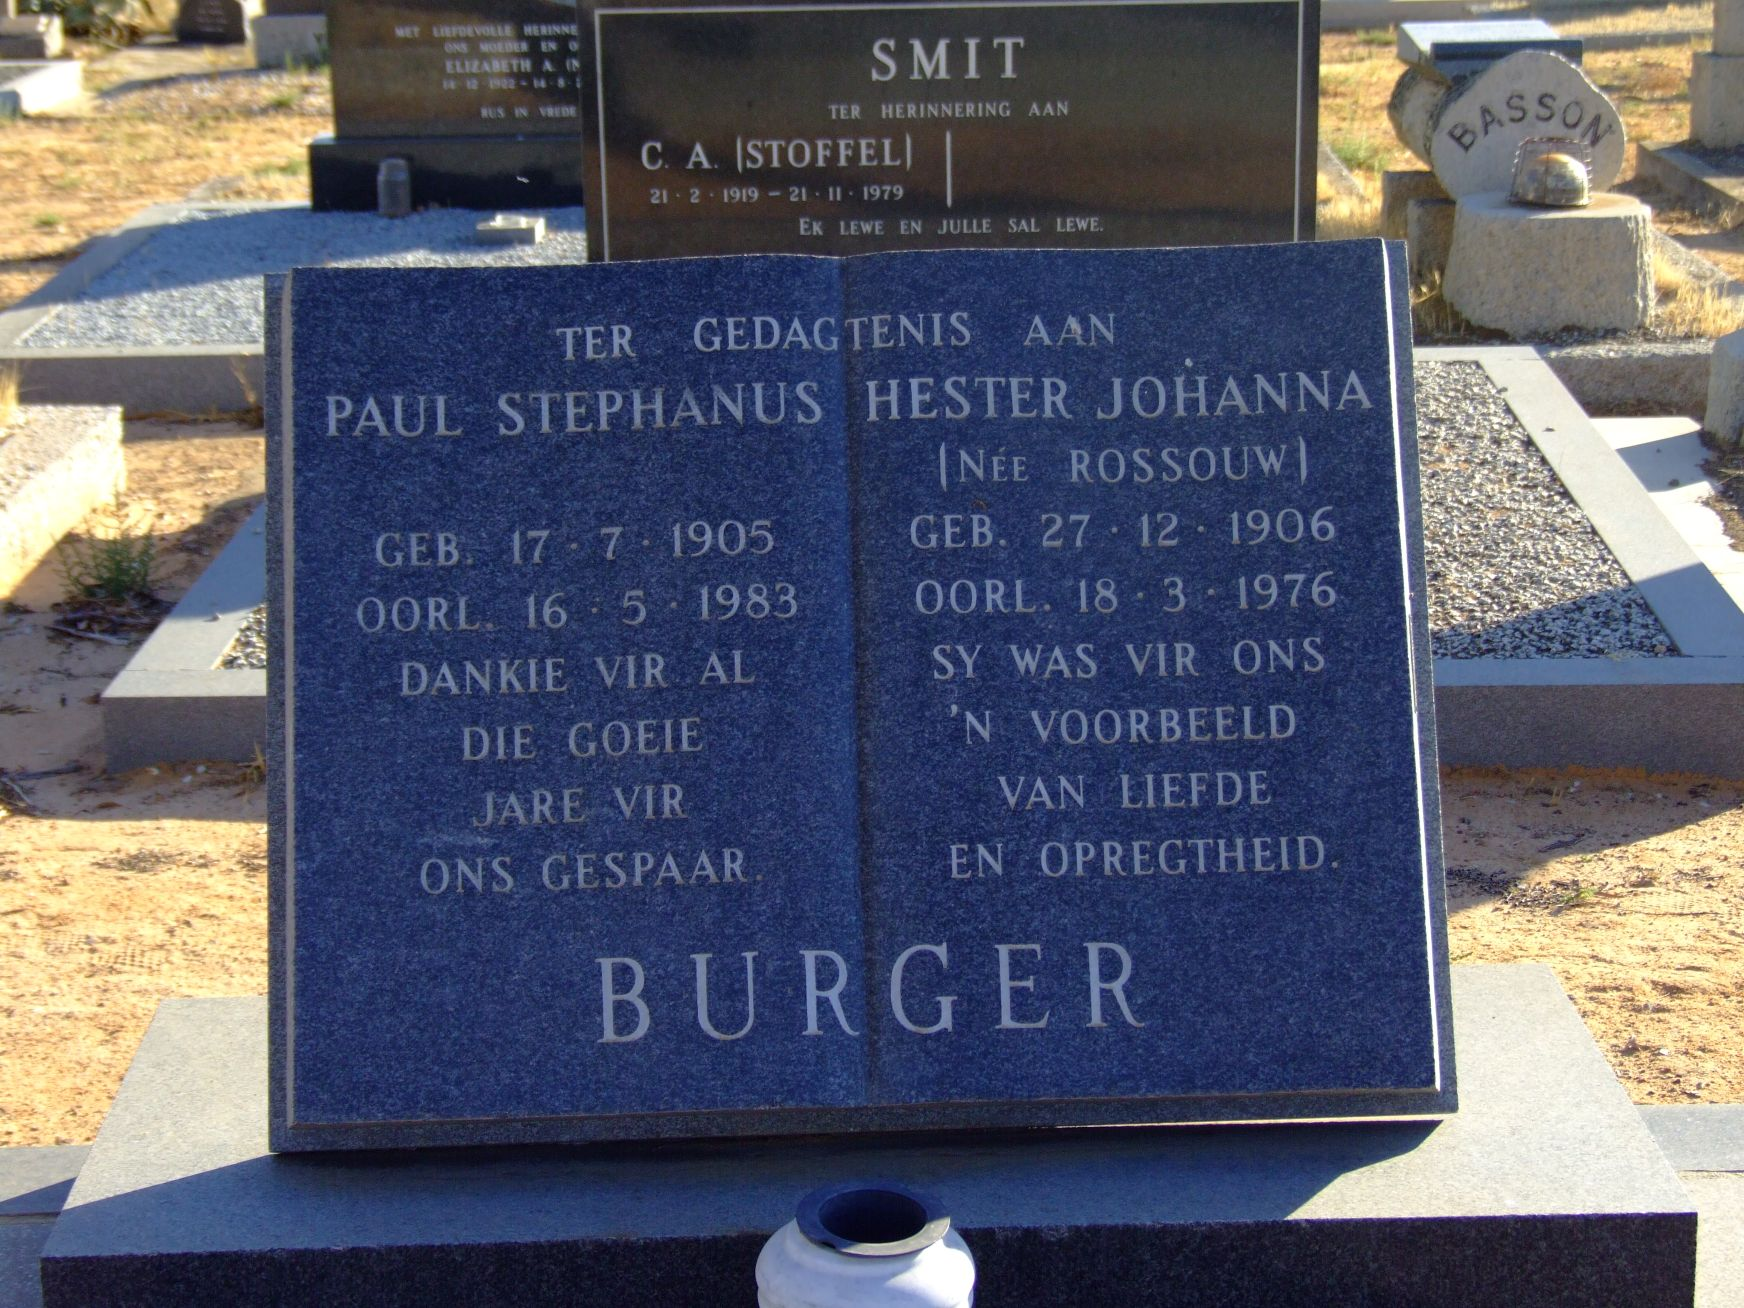 Burger, Paul Stephanus and Burger, Hester Johanna (nee Rossouw)